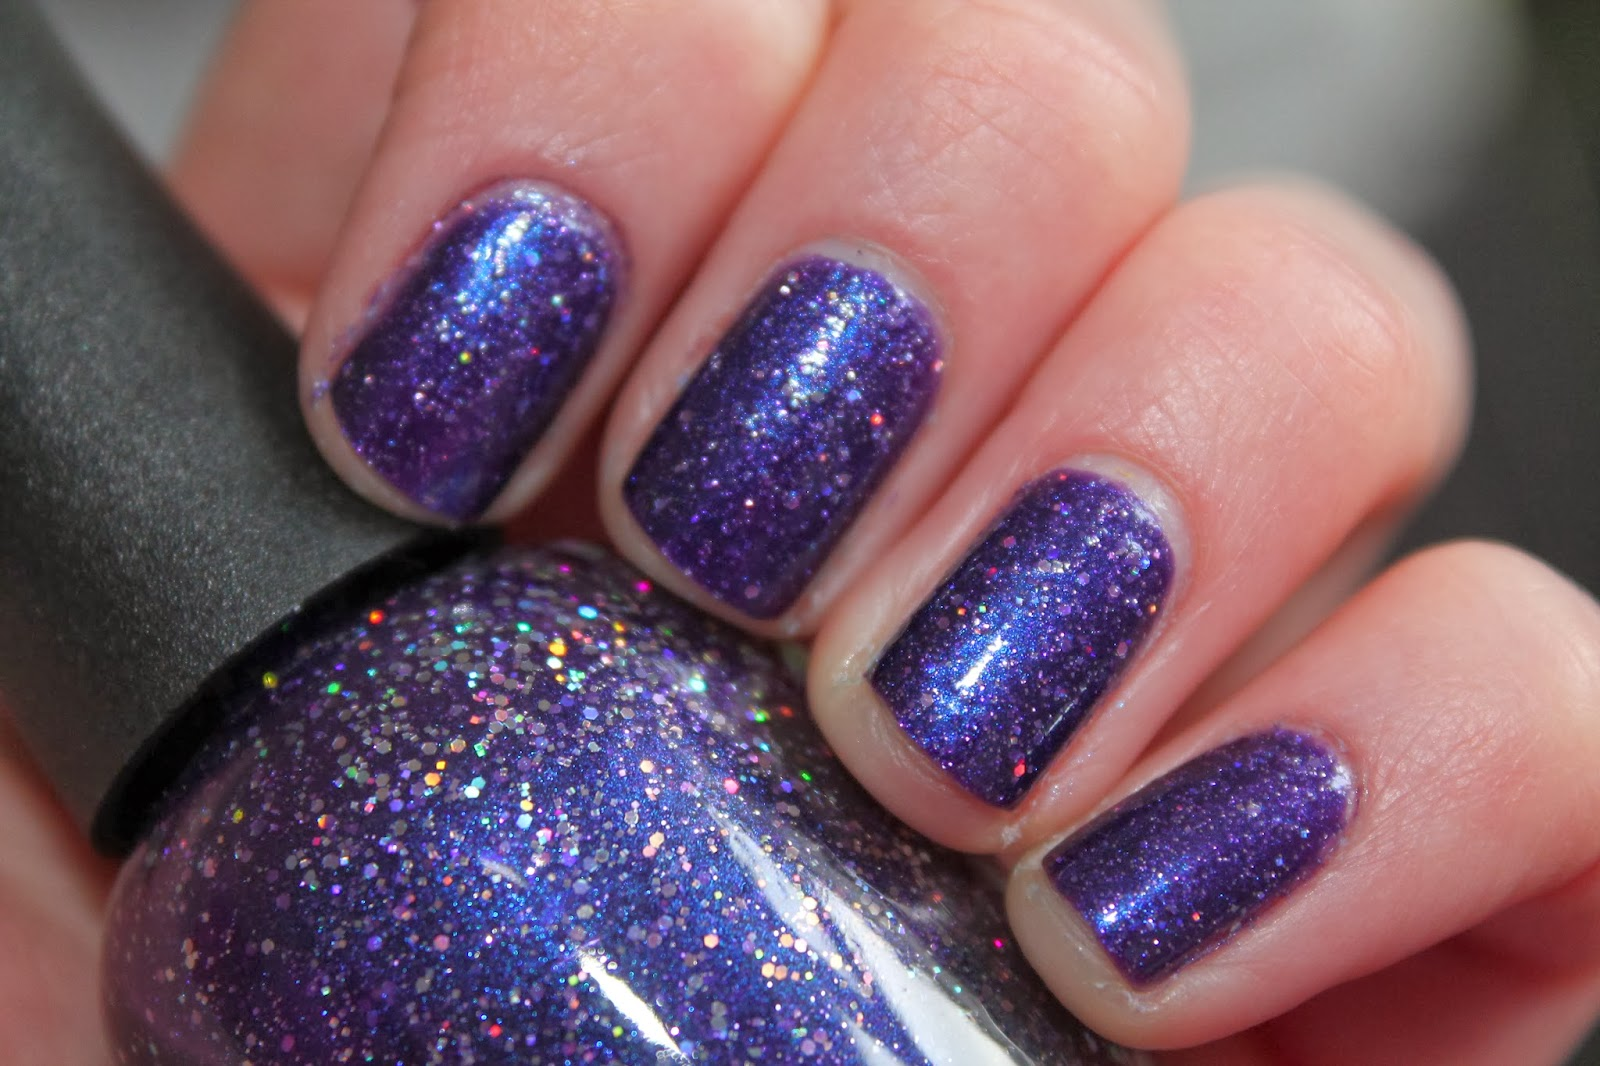 Manicure Monday - Purple Xing | gingerbread smiles.